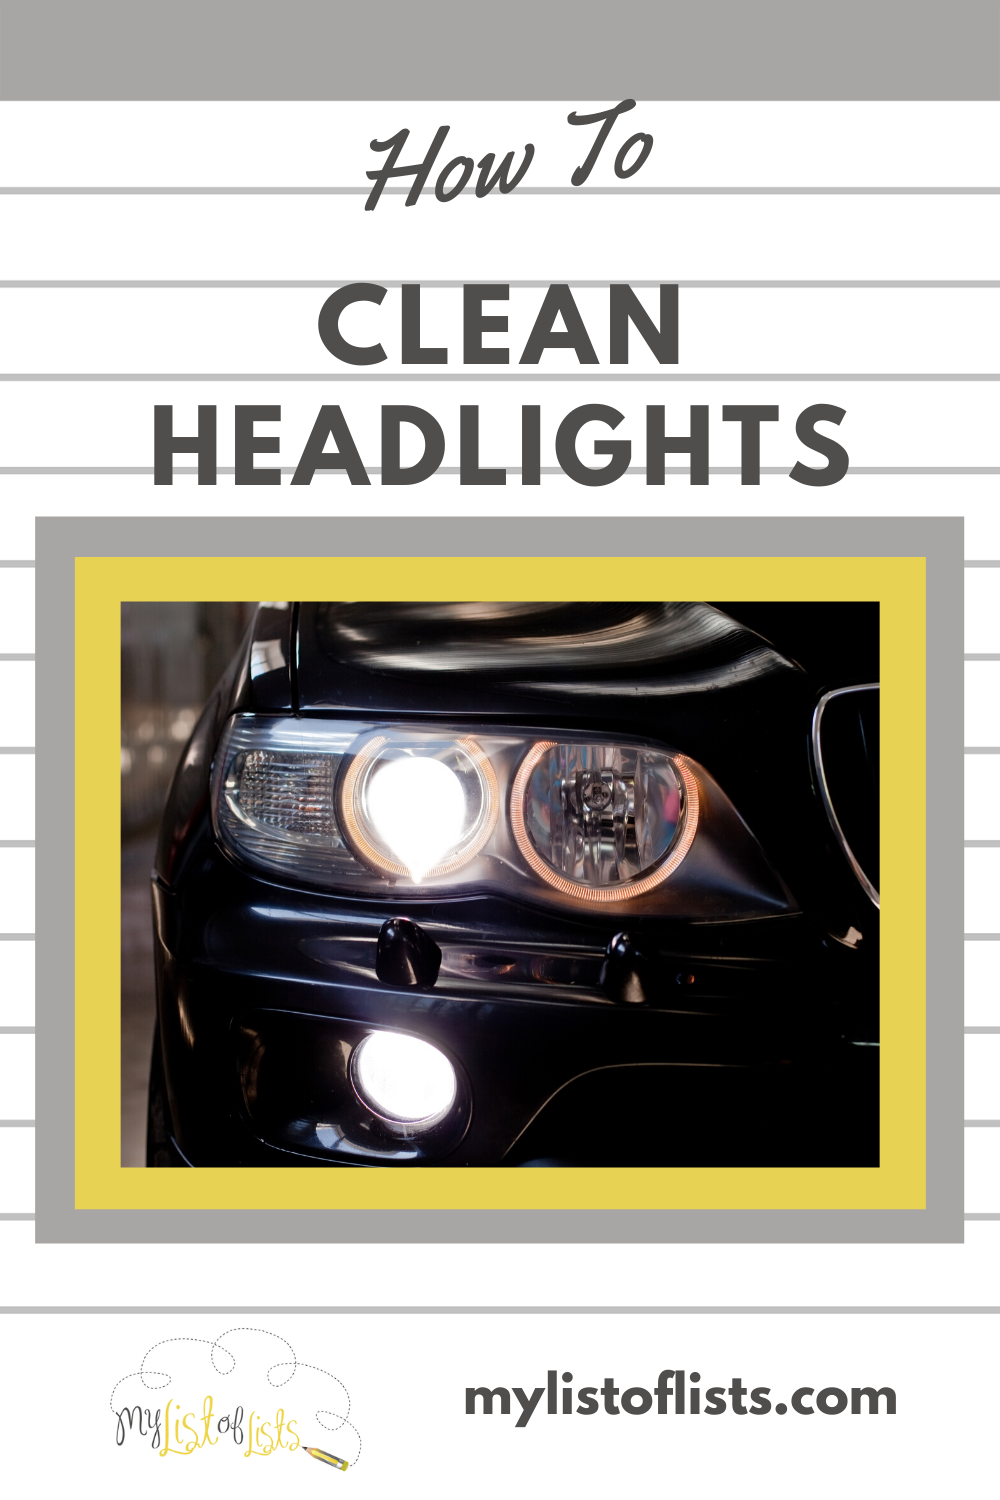 Car headlights take a beating. Between the weather and bugs, you know they can get dirty. But you don't need to worry about dirty headlights once you know these cleaning tips. They make cleaning a breeze and also keep your safe while driving at night. Read on to learn more. #Cleanheadlights #howtocleanheadlights #DIycleaningsolutionsforheadlights